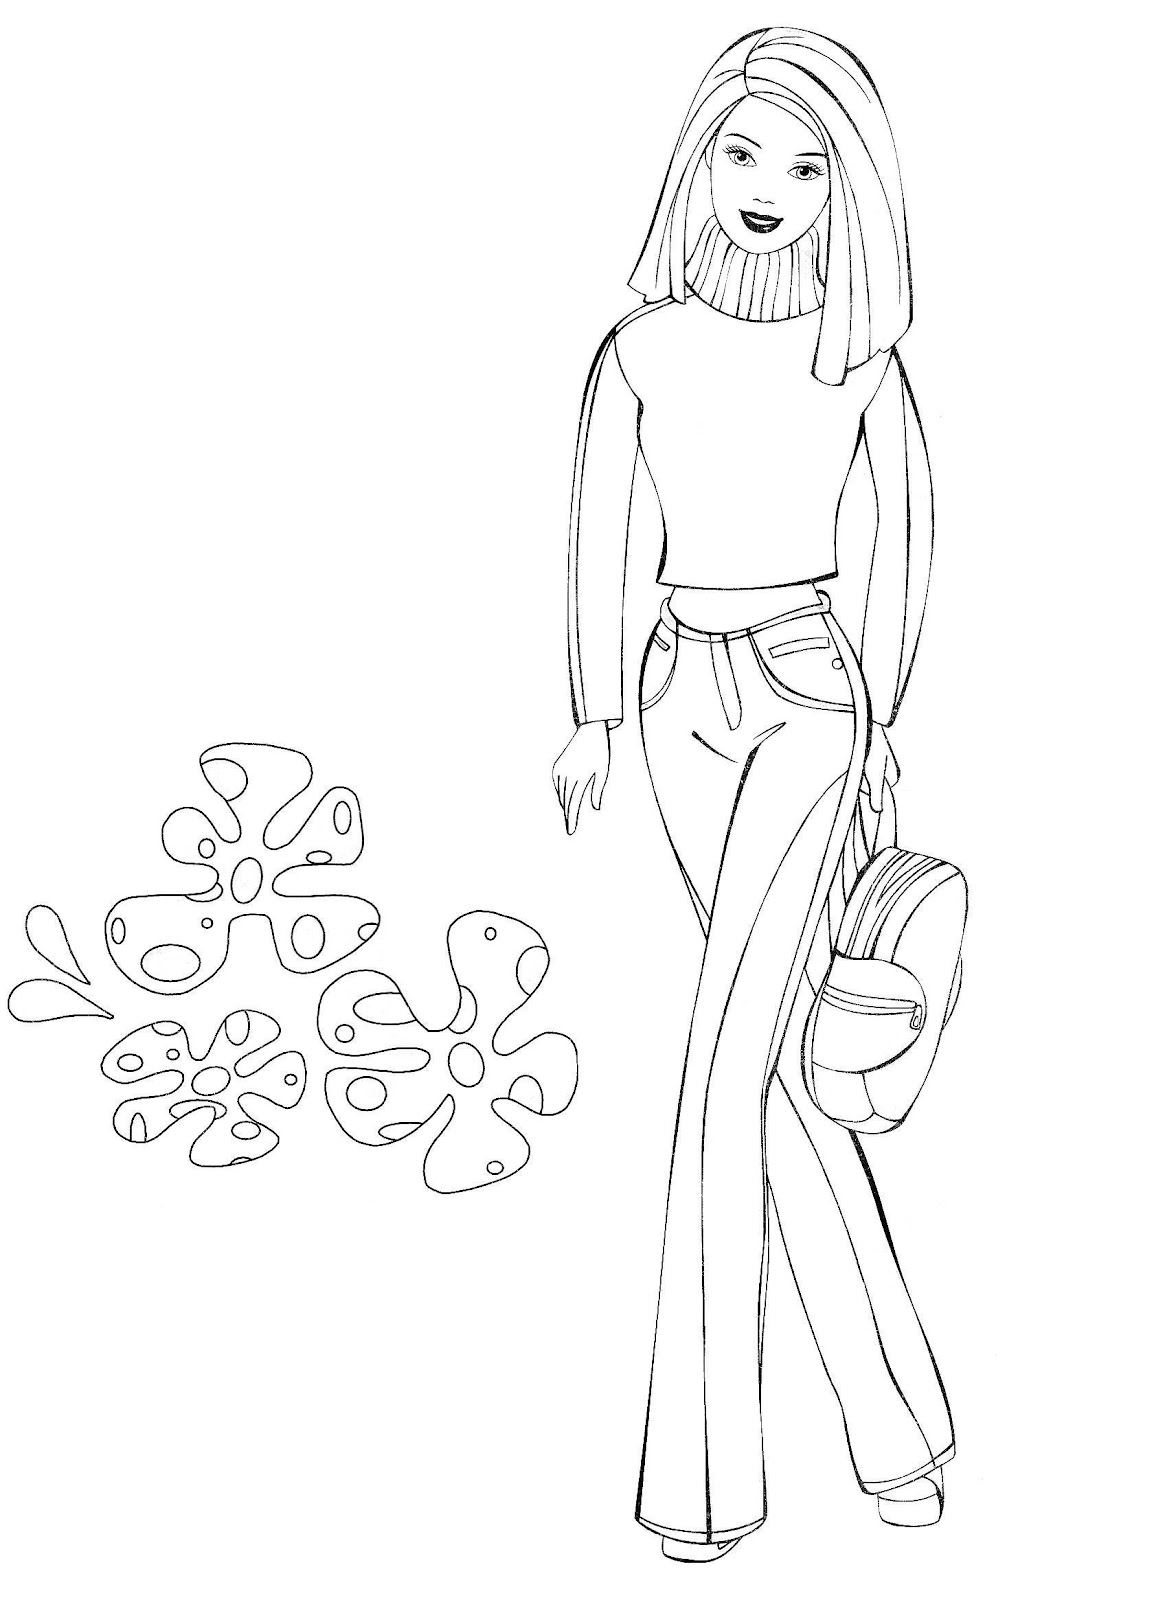 Modern Barbie Coloring Pages Best Ideas For Printable And Coloring